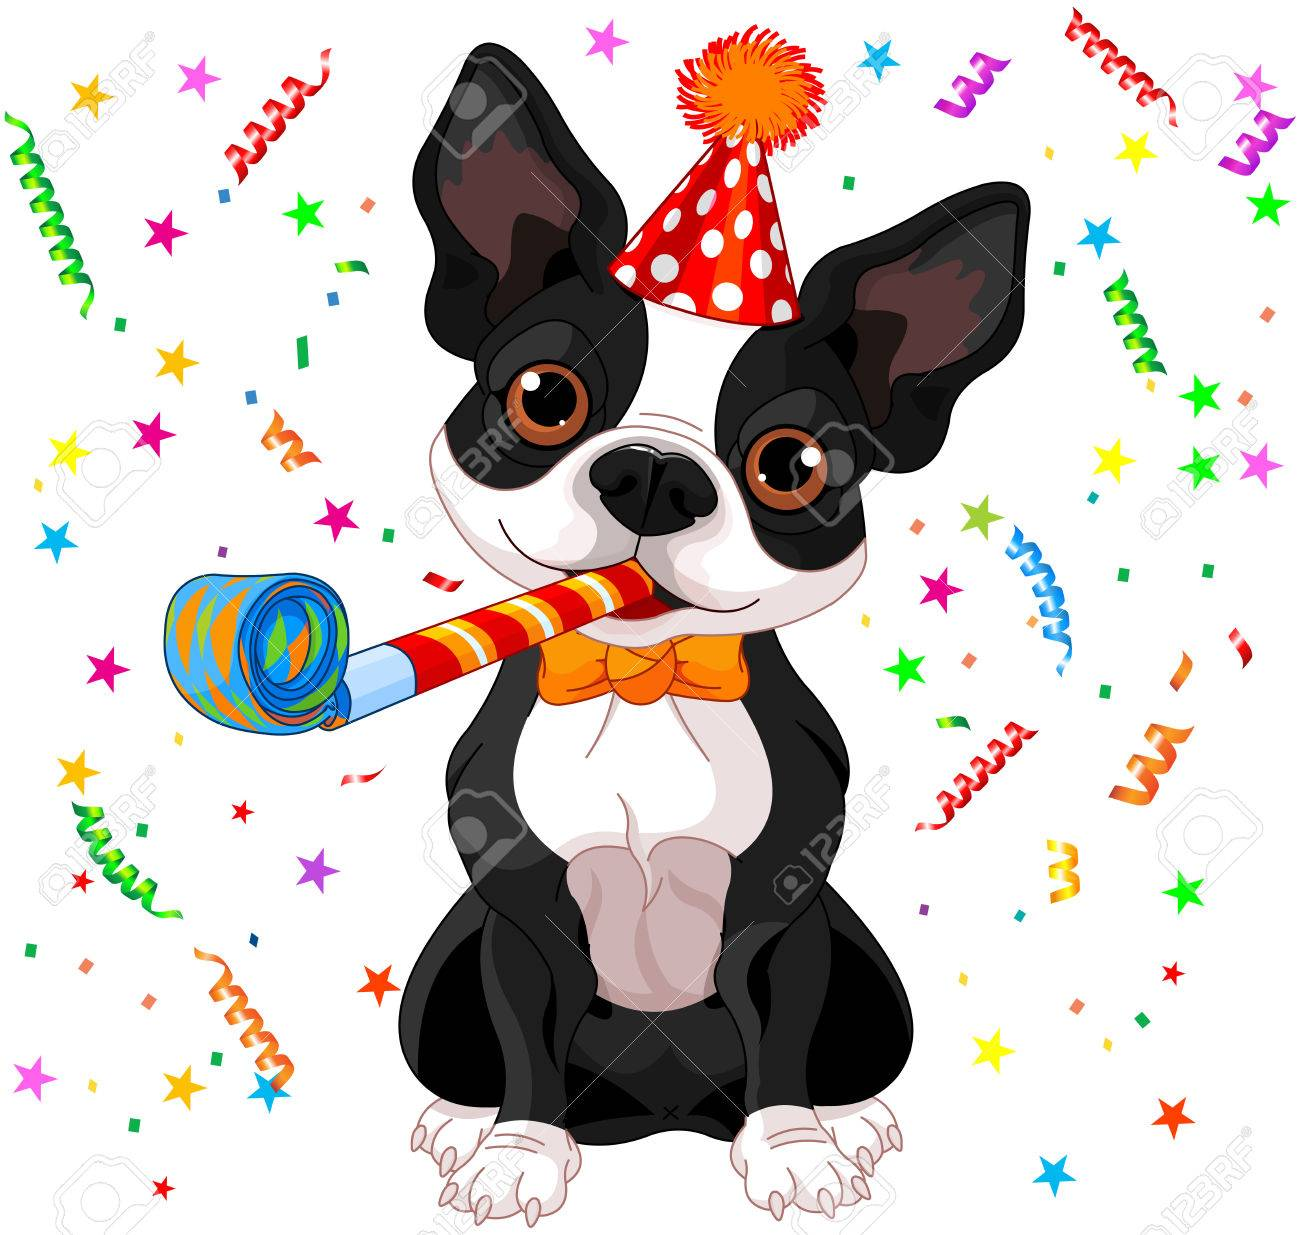 Ecole du chiot: pour ou contre? - Page 6 35588778-illustration-of-cute-boston-terrier-celebrating